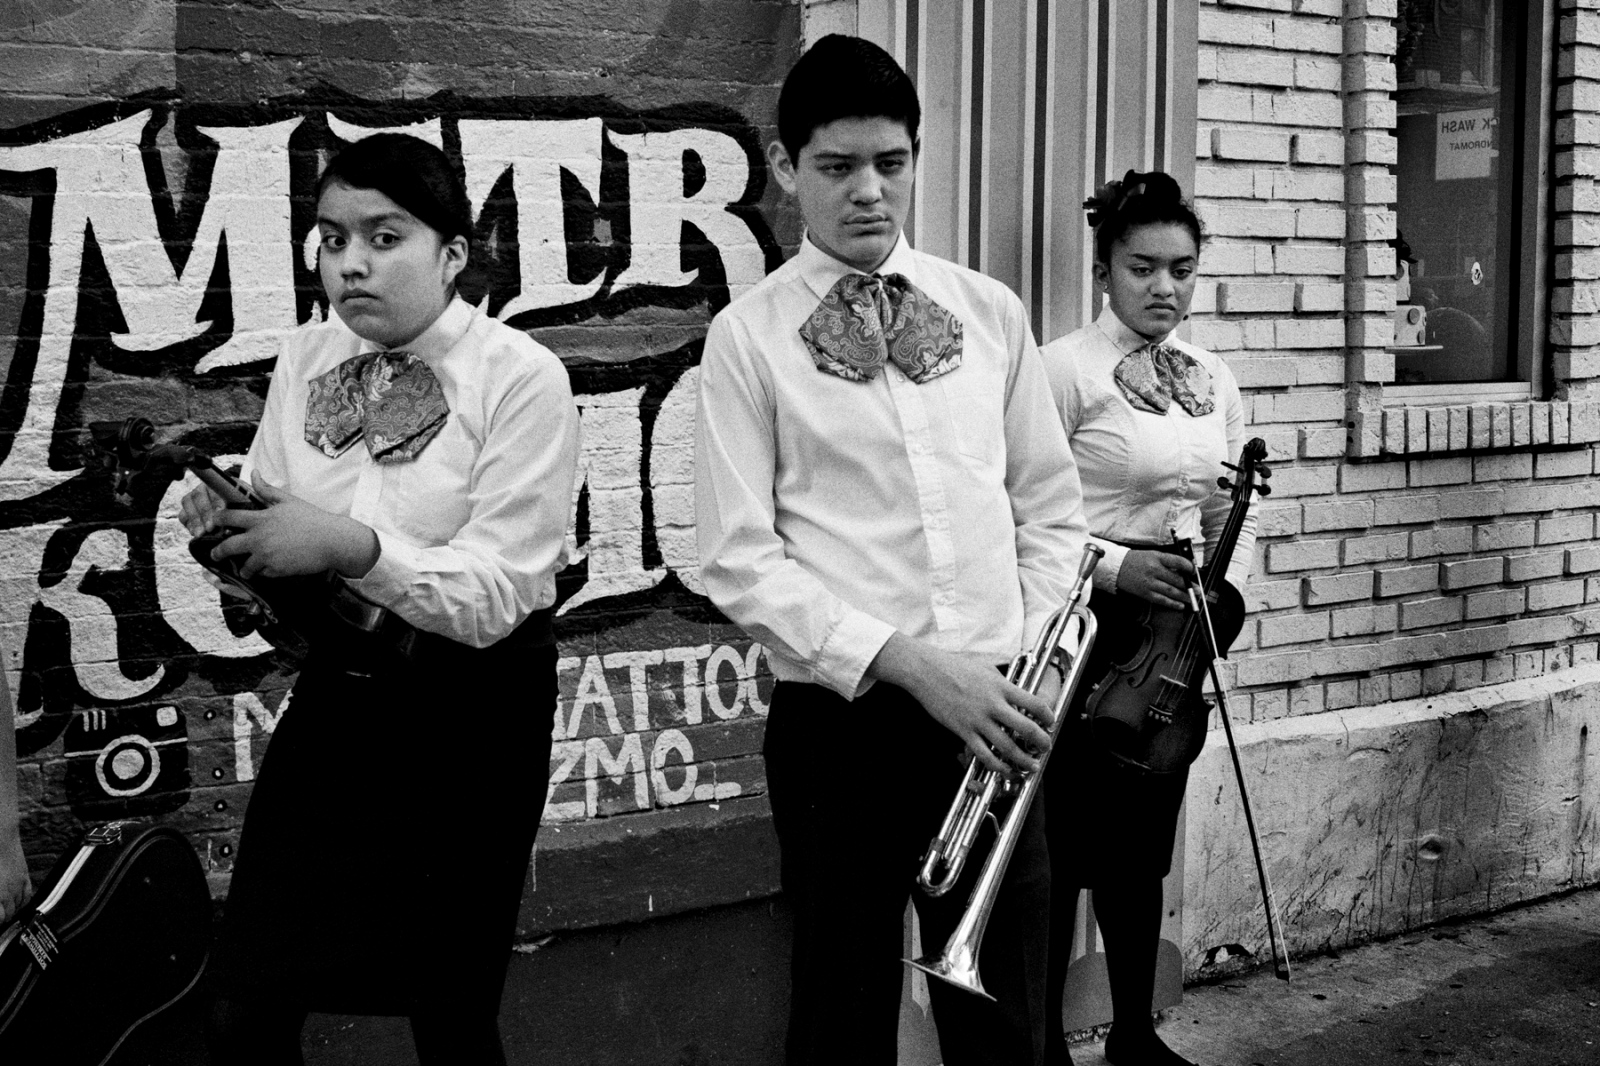 During the Mole de Mayo Festival in the Pilsen neighborhood of Chicago, young mariachi players perform between Lucha matches. Pilsen has been an immigrant community for over 150 years. Originally mainly composed on Eastern Europeans, it later became home to a majority Latino immigrants. This lower east side neighborhood is going through a gentrification and many families are being now displaced or priced out of their homes.